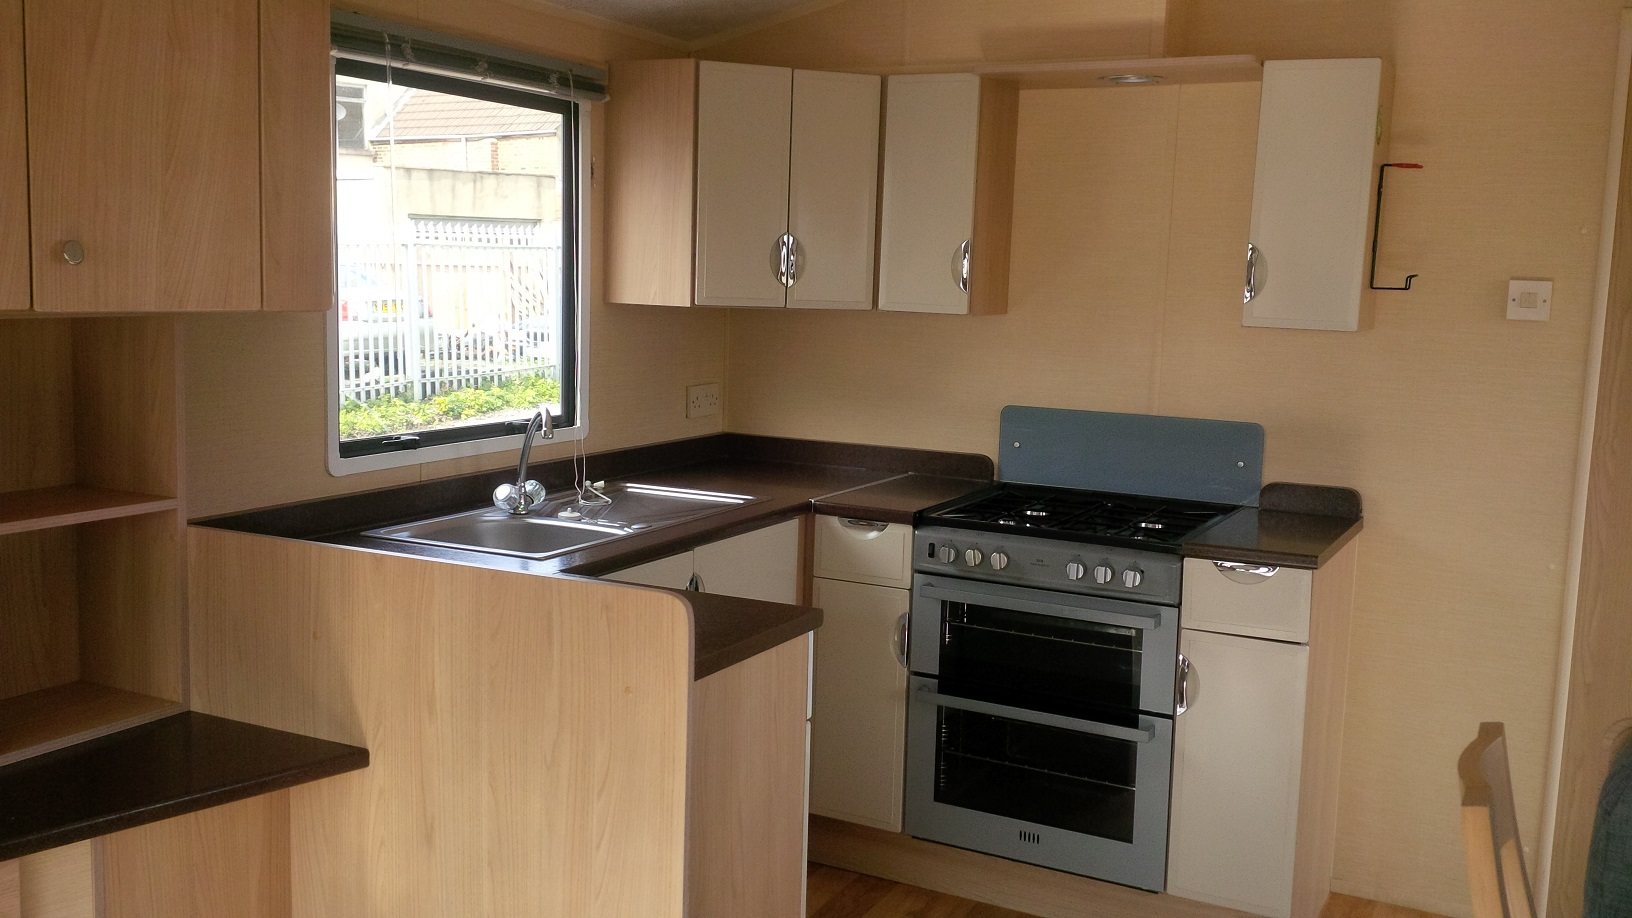 Willerby Westmorland: Used Static Caravans and Holiday Homes for sale, Langley Moor, Durham Large Image 2